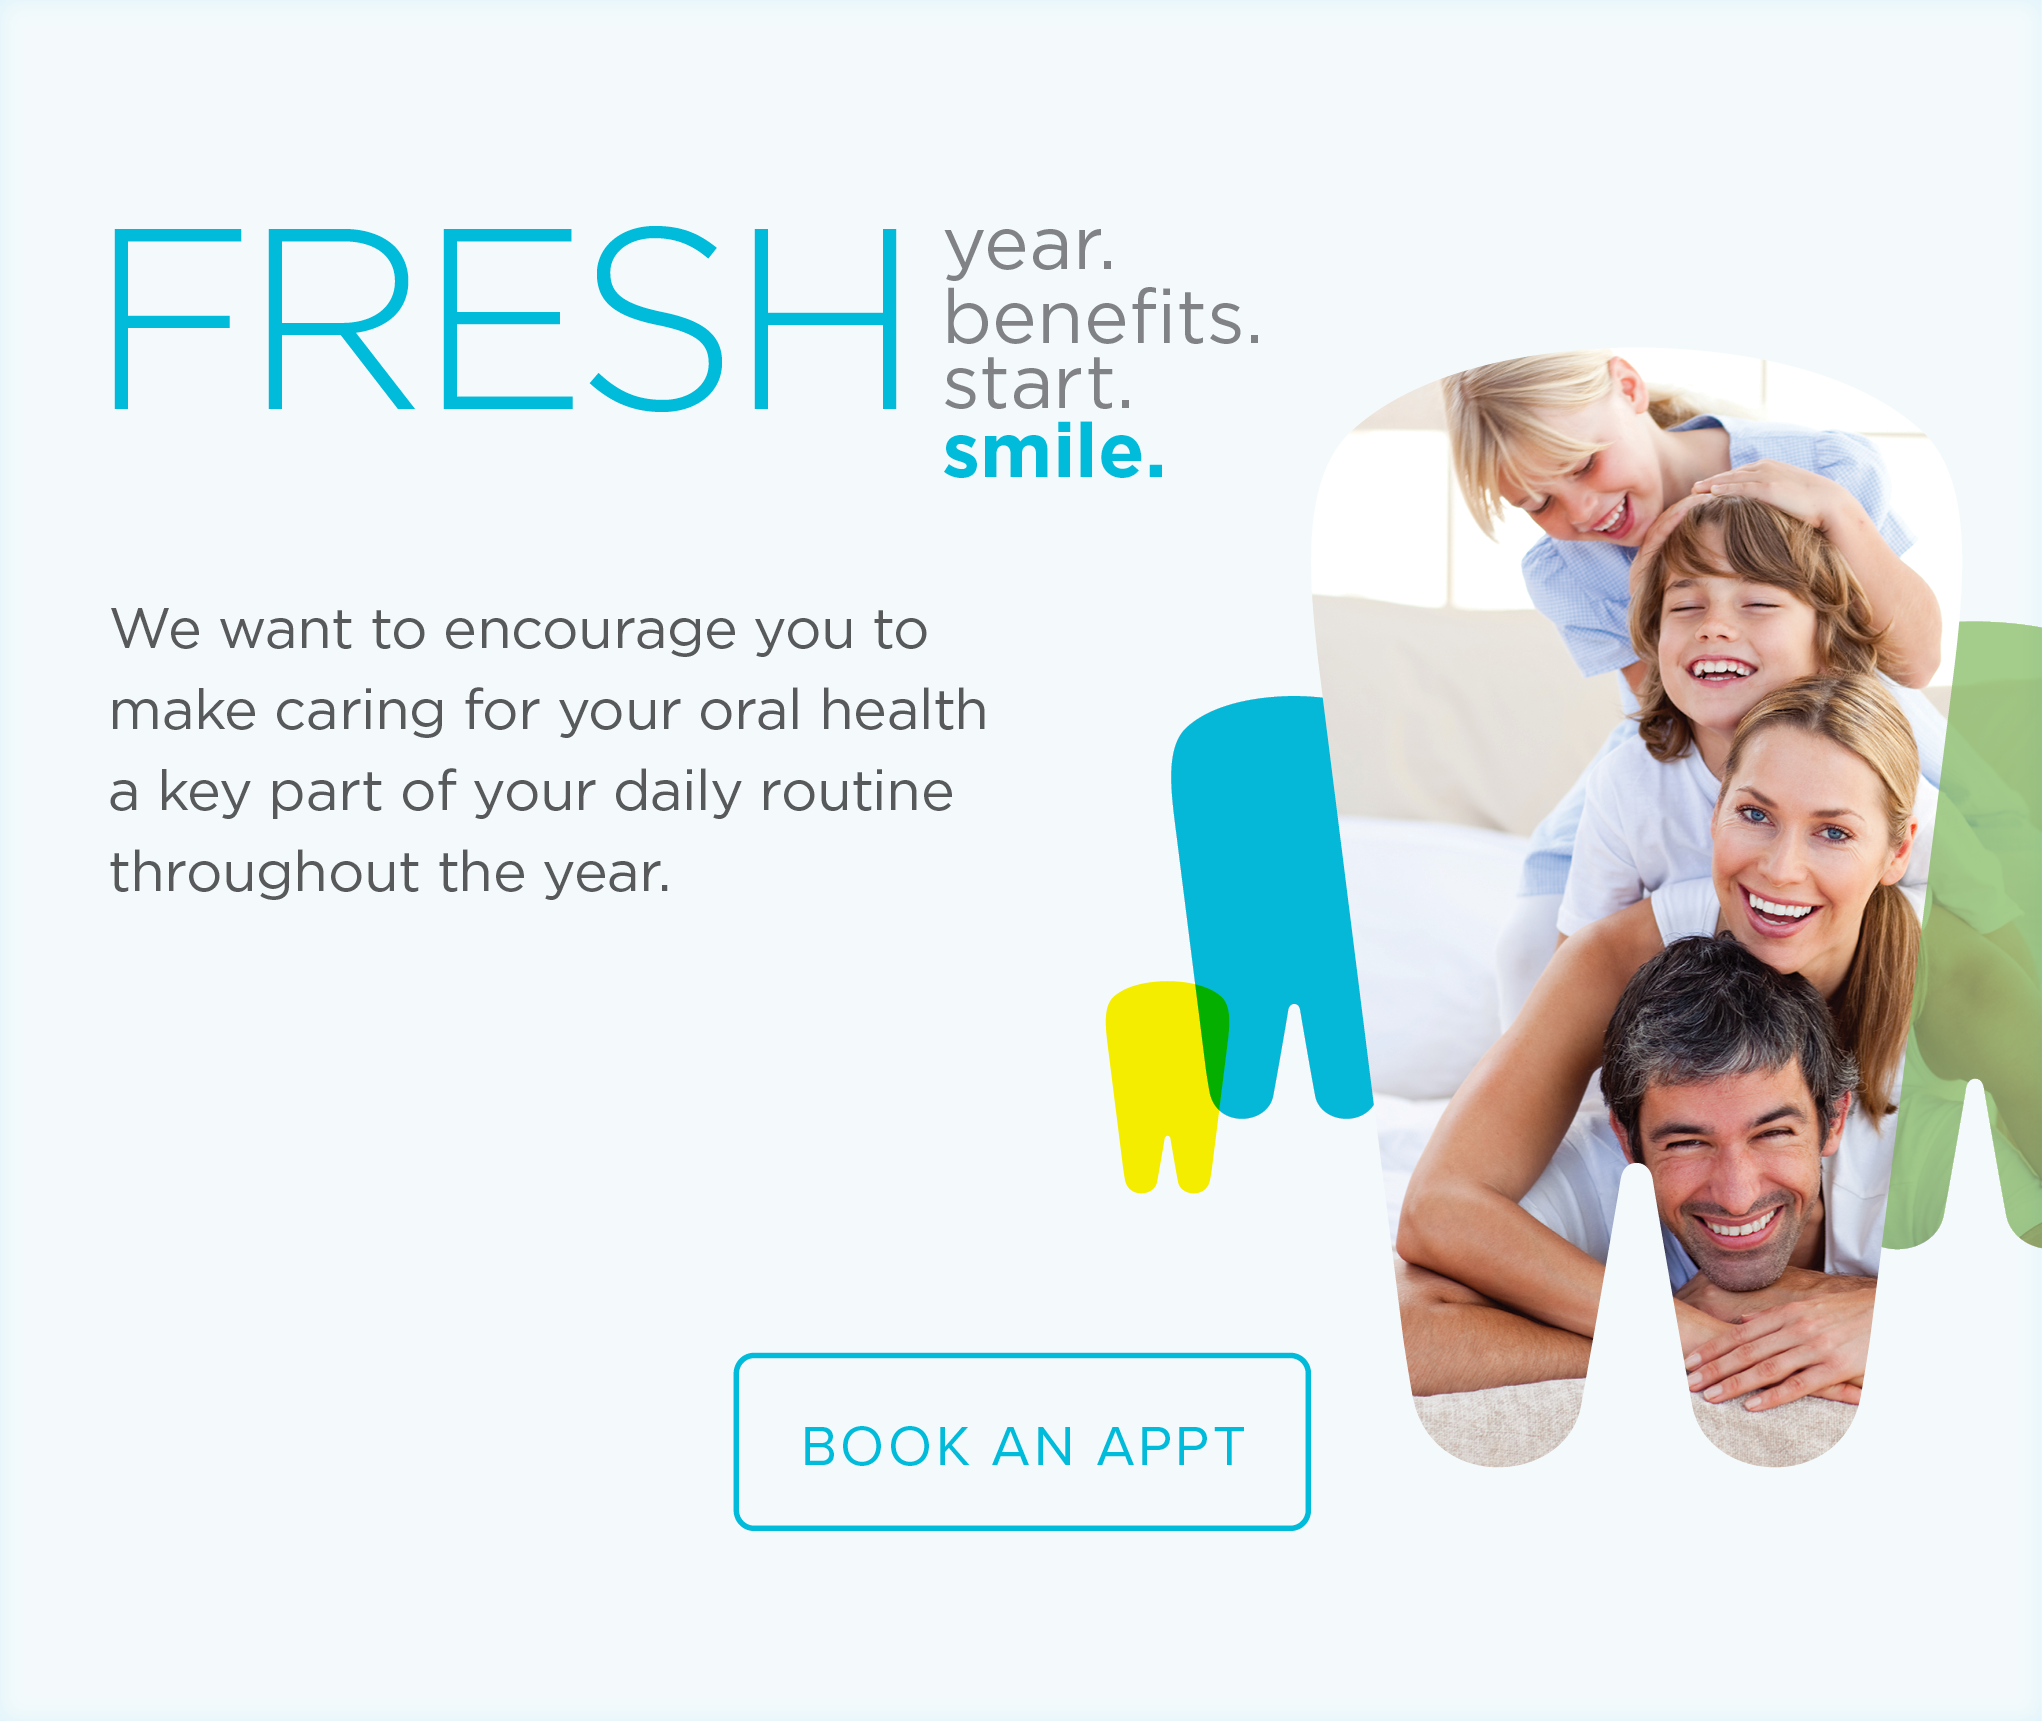 Macon Dentist Office - Make the Most of Your Benefits